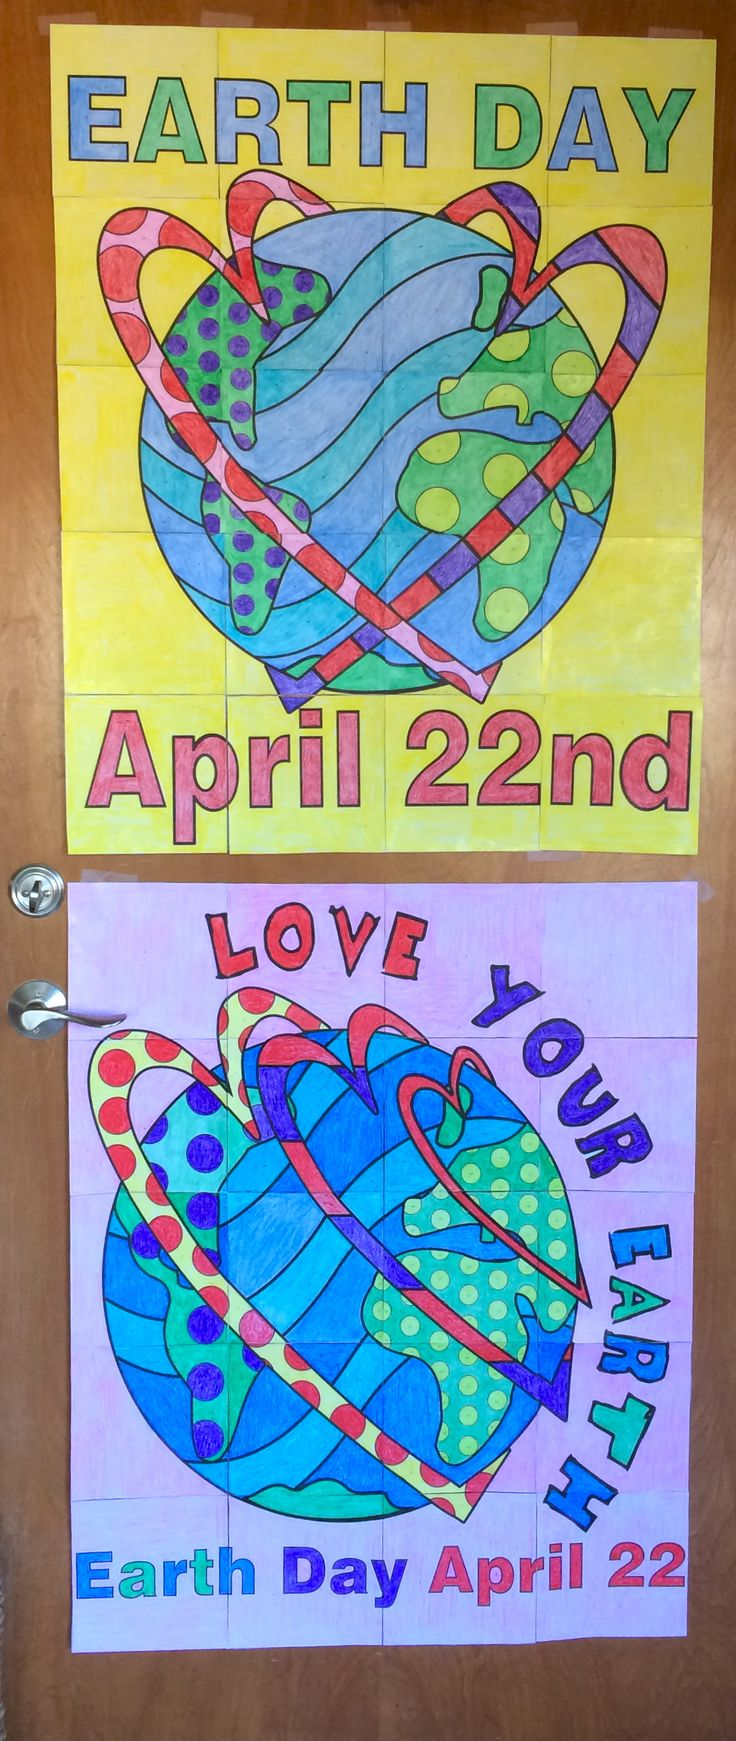 """Earth Day collaborative group posters! Each poster has 20 pieces with colors assigned per a color key. When finished the posters are approx. 29"""" x 36"""" each. Kid love working together to see the finished picture!"""